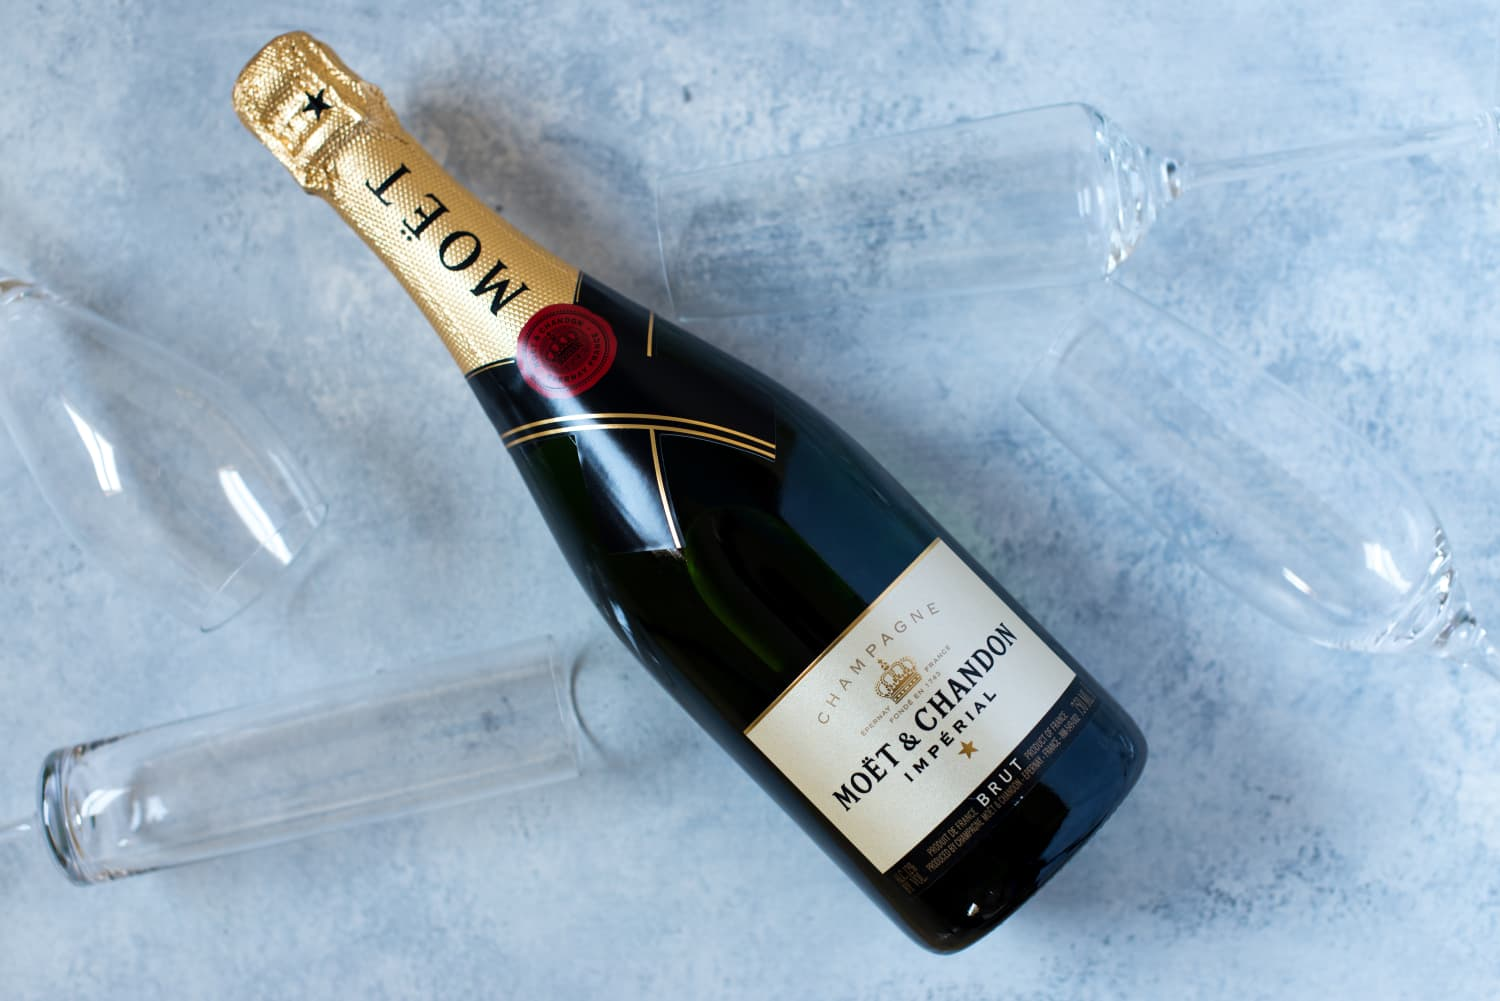 When (and Why) You Should Spring for the Good Champagne